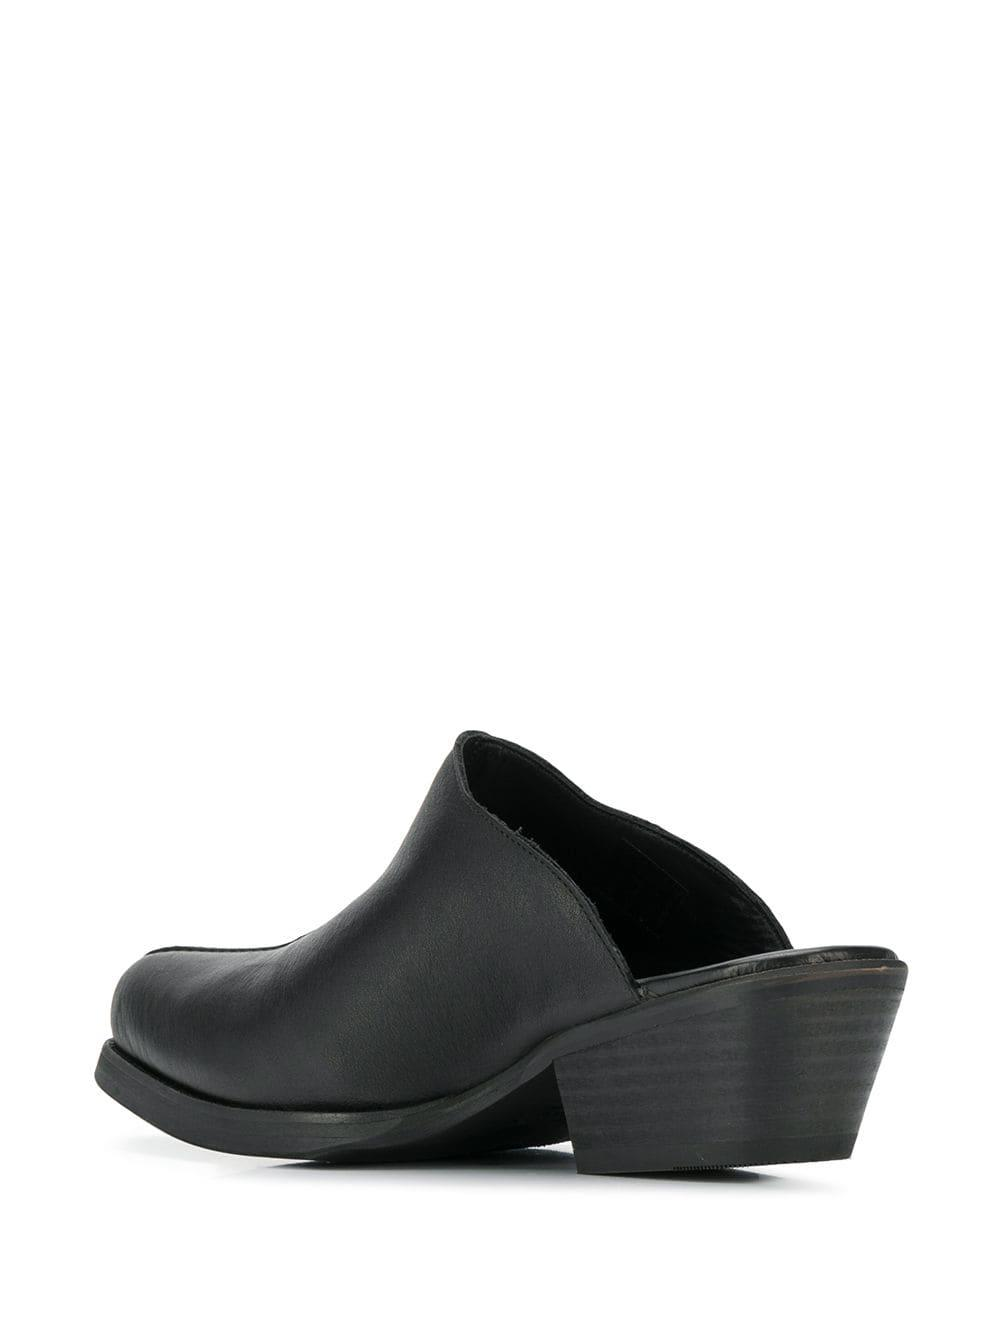 Our Legacy Leather Slip-on Mules in